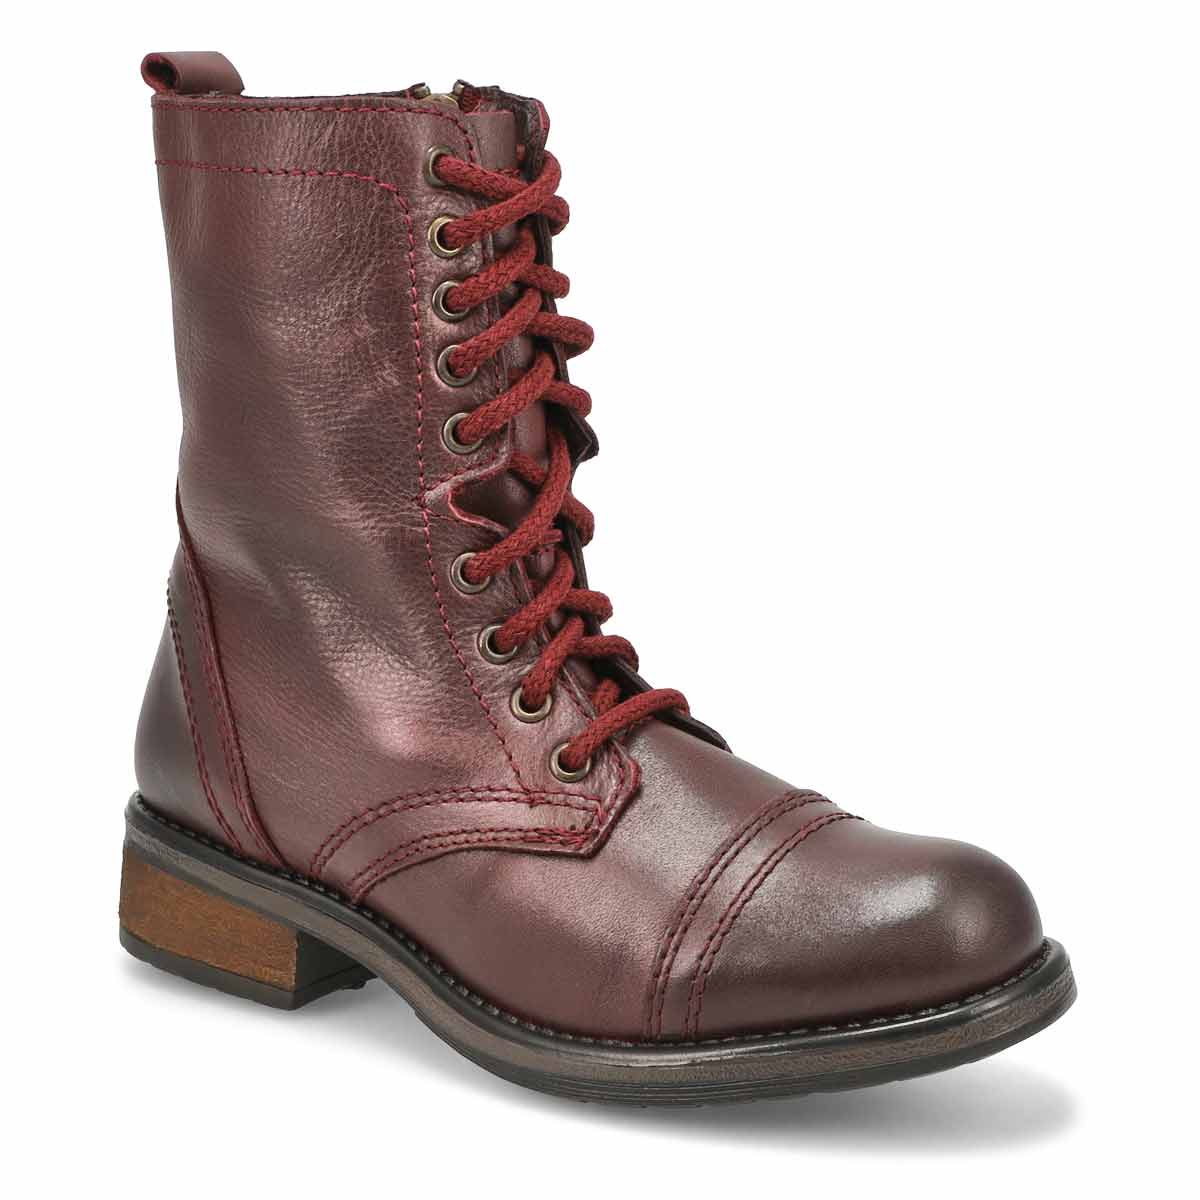 Lds Troopa4.0 brgndy lace up combat boot